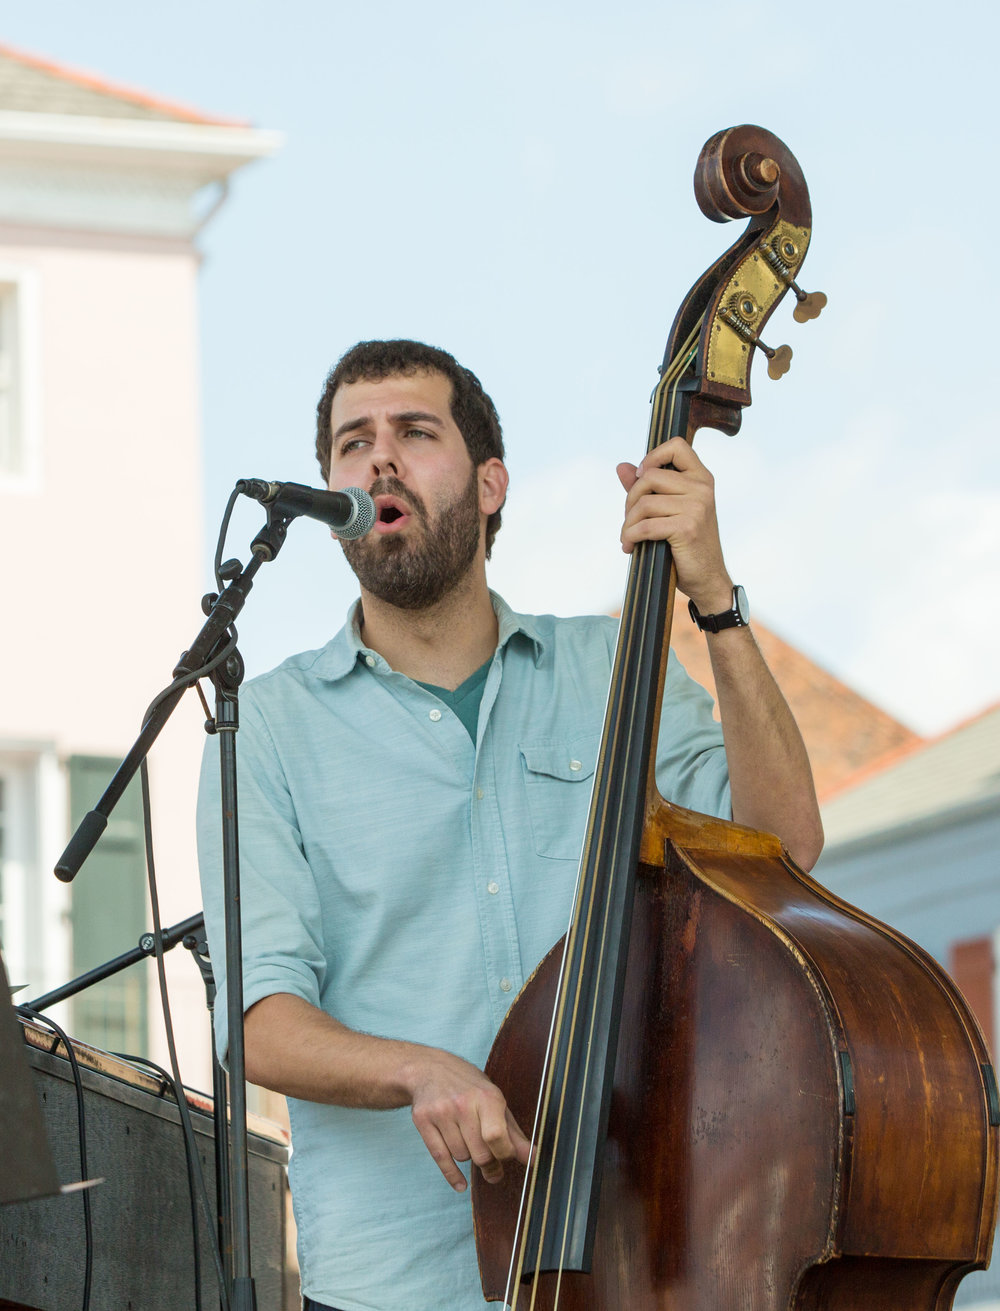 new-orleans-catahoulas-rnb-rhythm-blues-band-music-joshua-gouzy-bass-vocals-french-quarter-fest